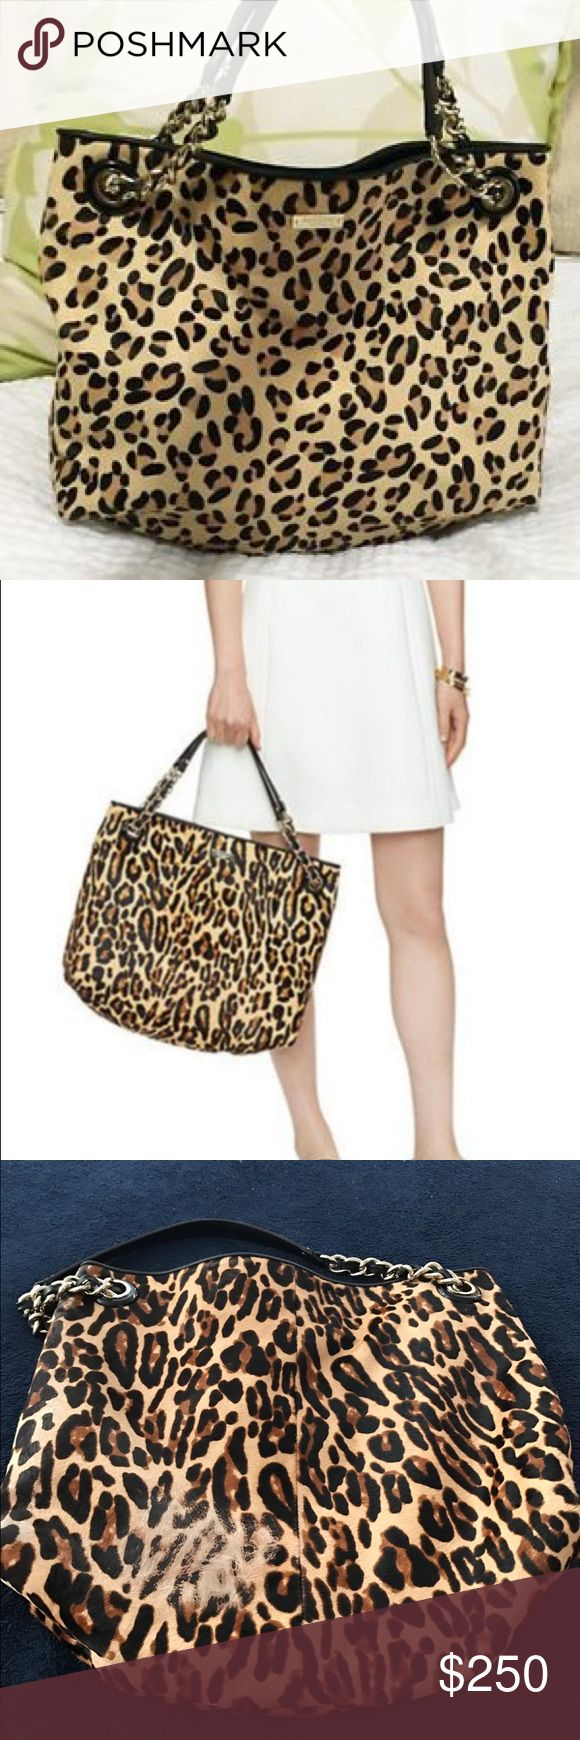 """Kate spade ♠️ New York streetcar darya Kate Spade ♠️ streetcar darya tote! Leopard calfhair. Large leopard calfhair shoulder bag with black cowhide trim 14-karat gold plated hardware magnetic snap closure dual leather and chain link handles with 7.1"""" drop. Light gold kate spade New York plate. Kate spade interior lining with one zip pocket and 2 multifunction slip pockets. Approx 15"""" (L) x 13.4"""" (H) x 5.1"""" (D) color leopard. Please note back side of tote had some calf hair rubbed off. This…"""